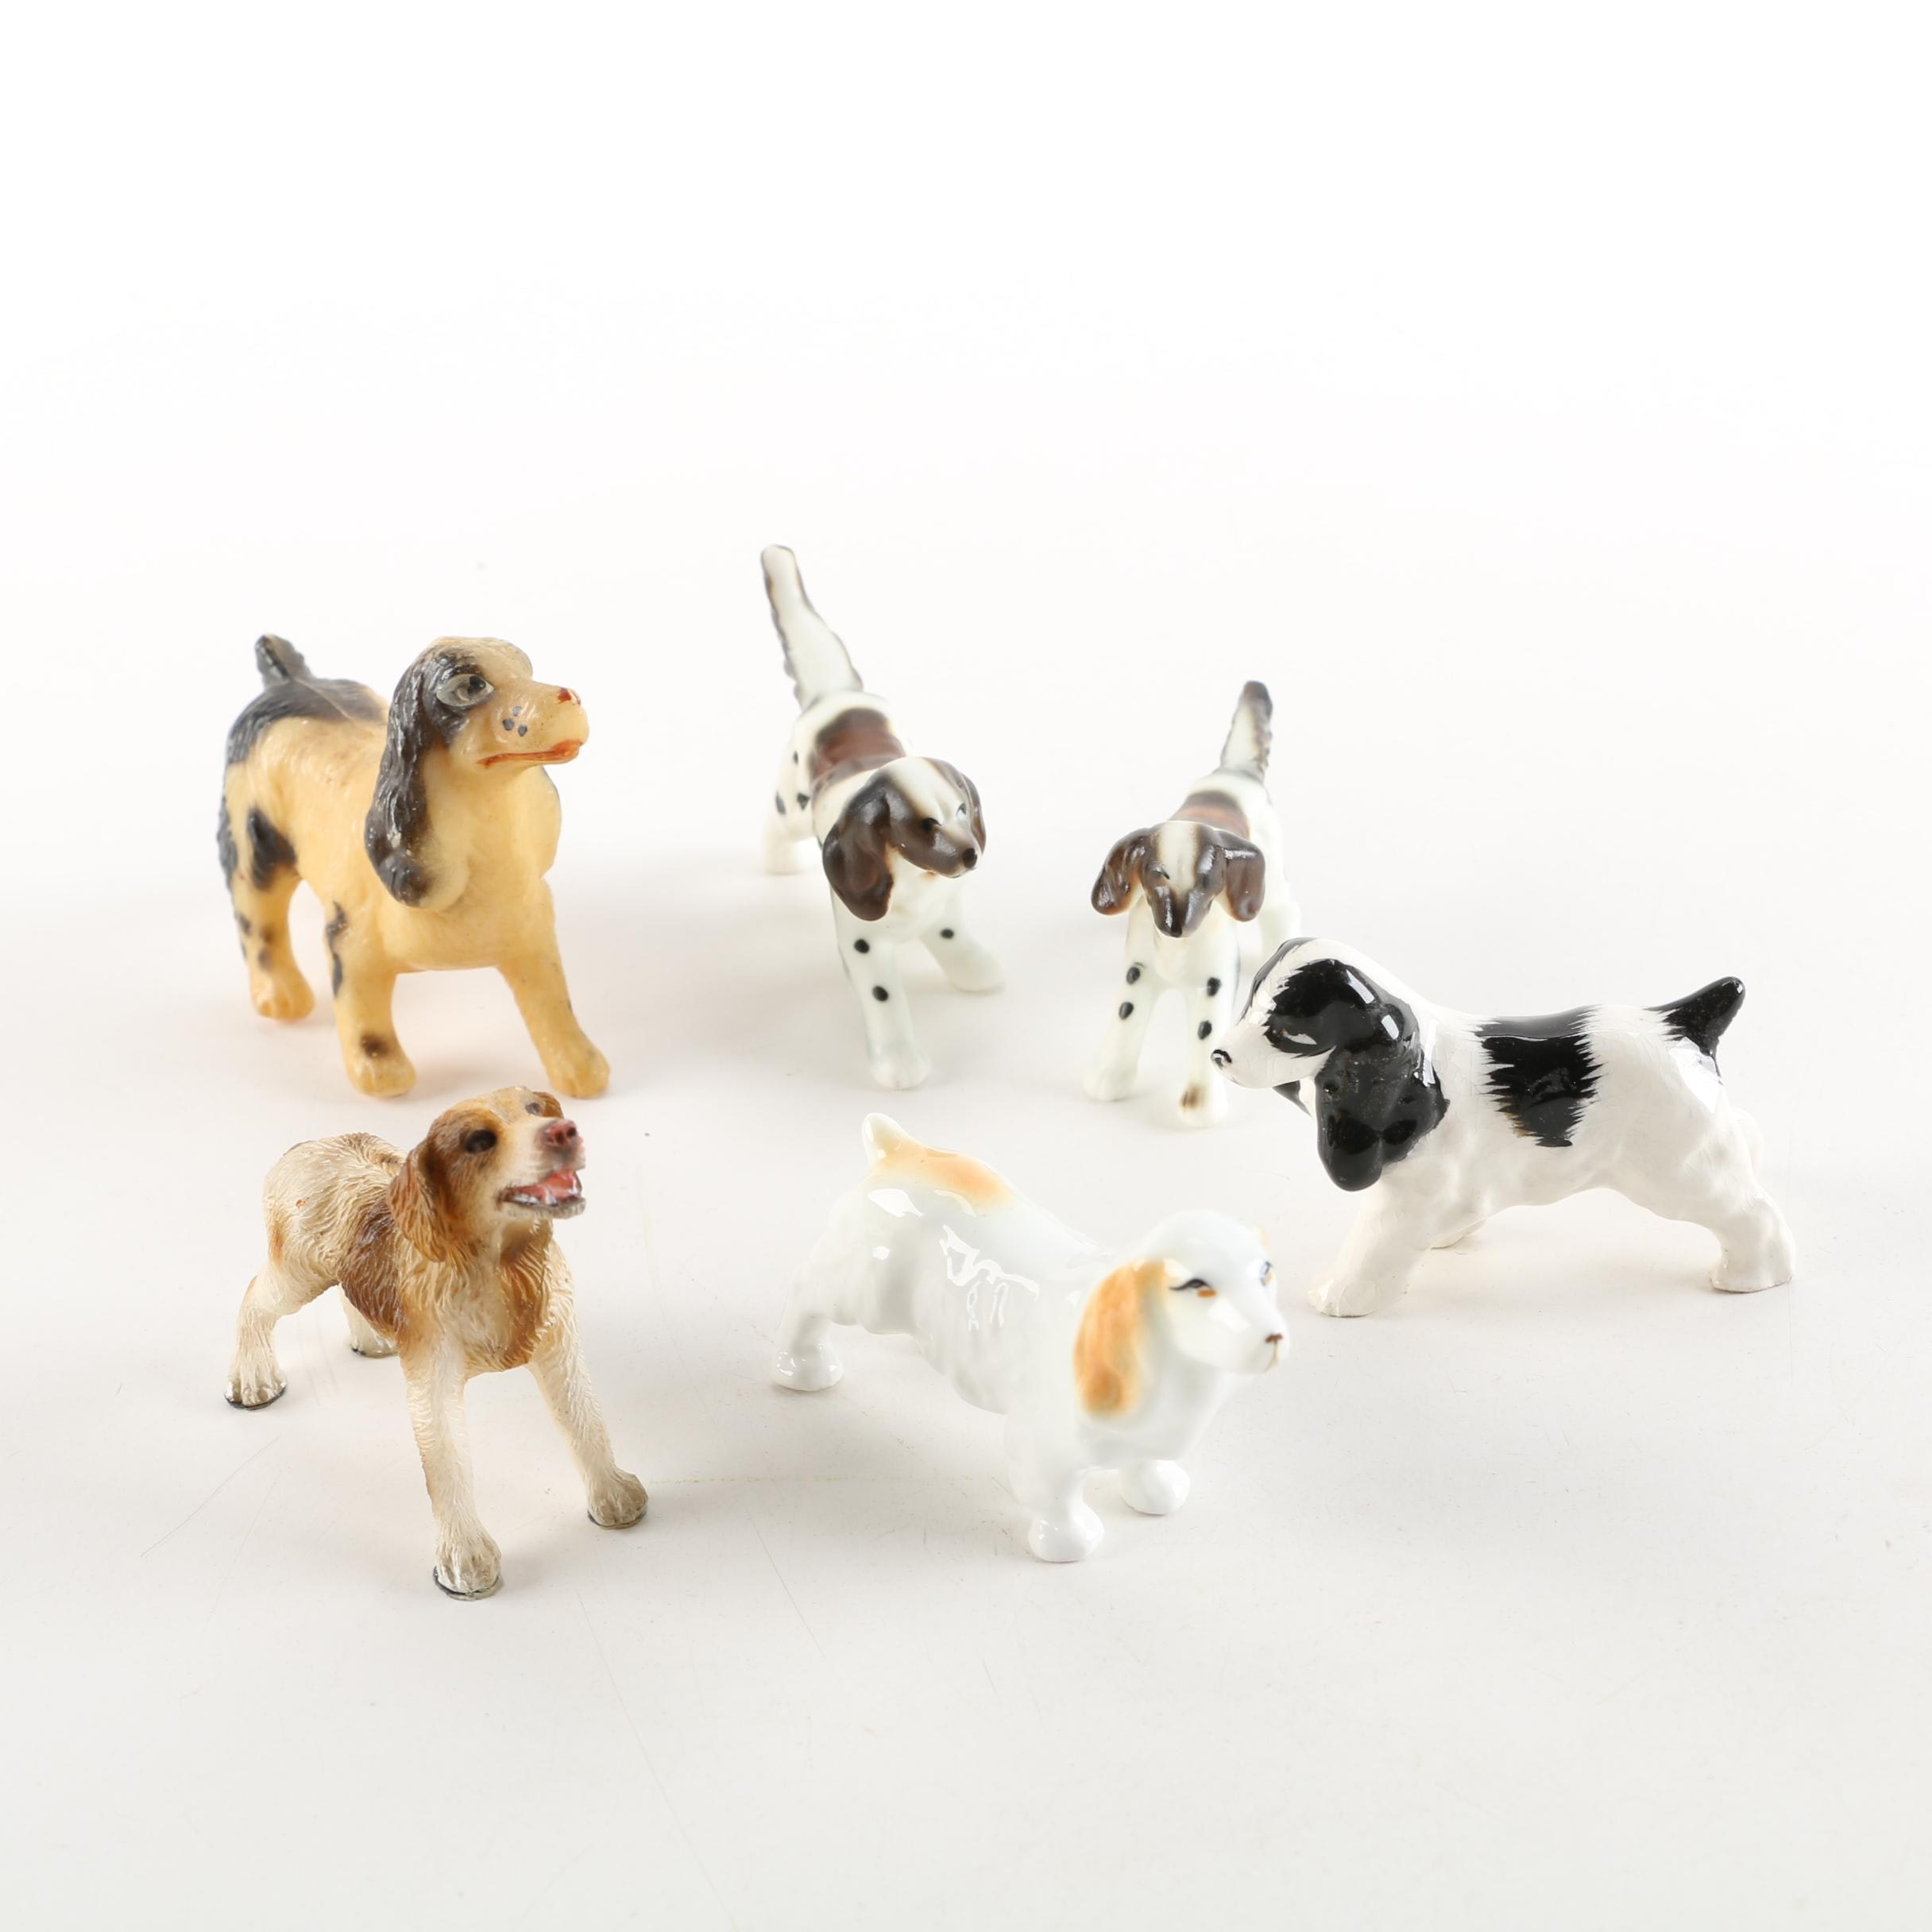 Porcelain and Plastic Dog Figurines